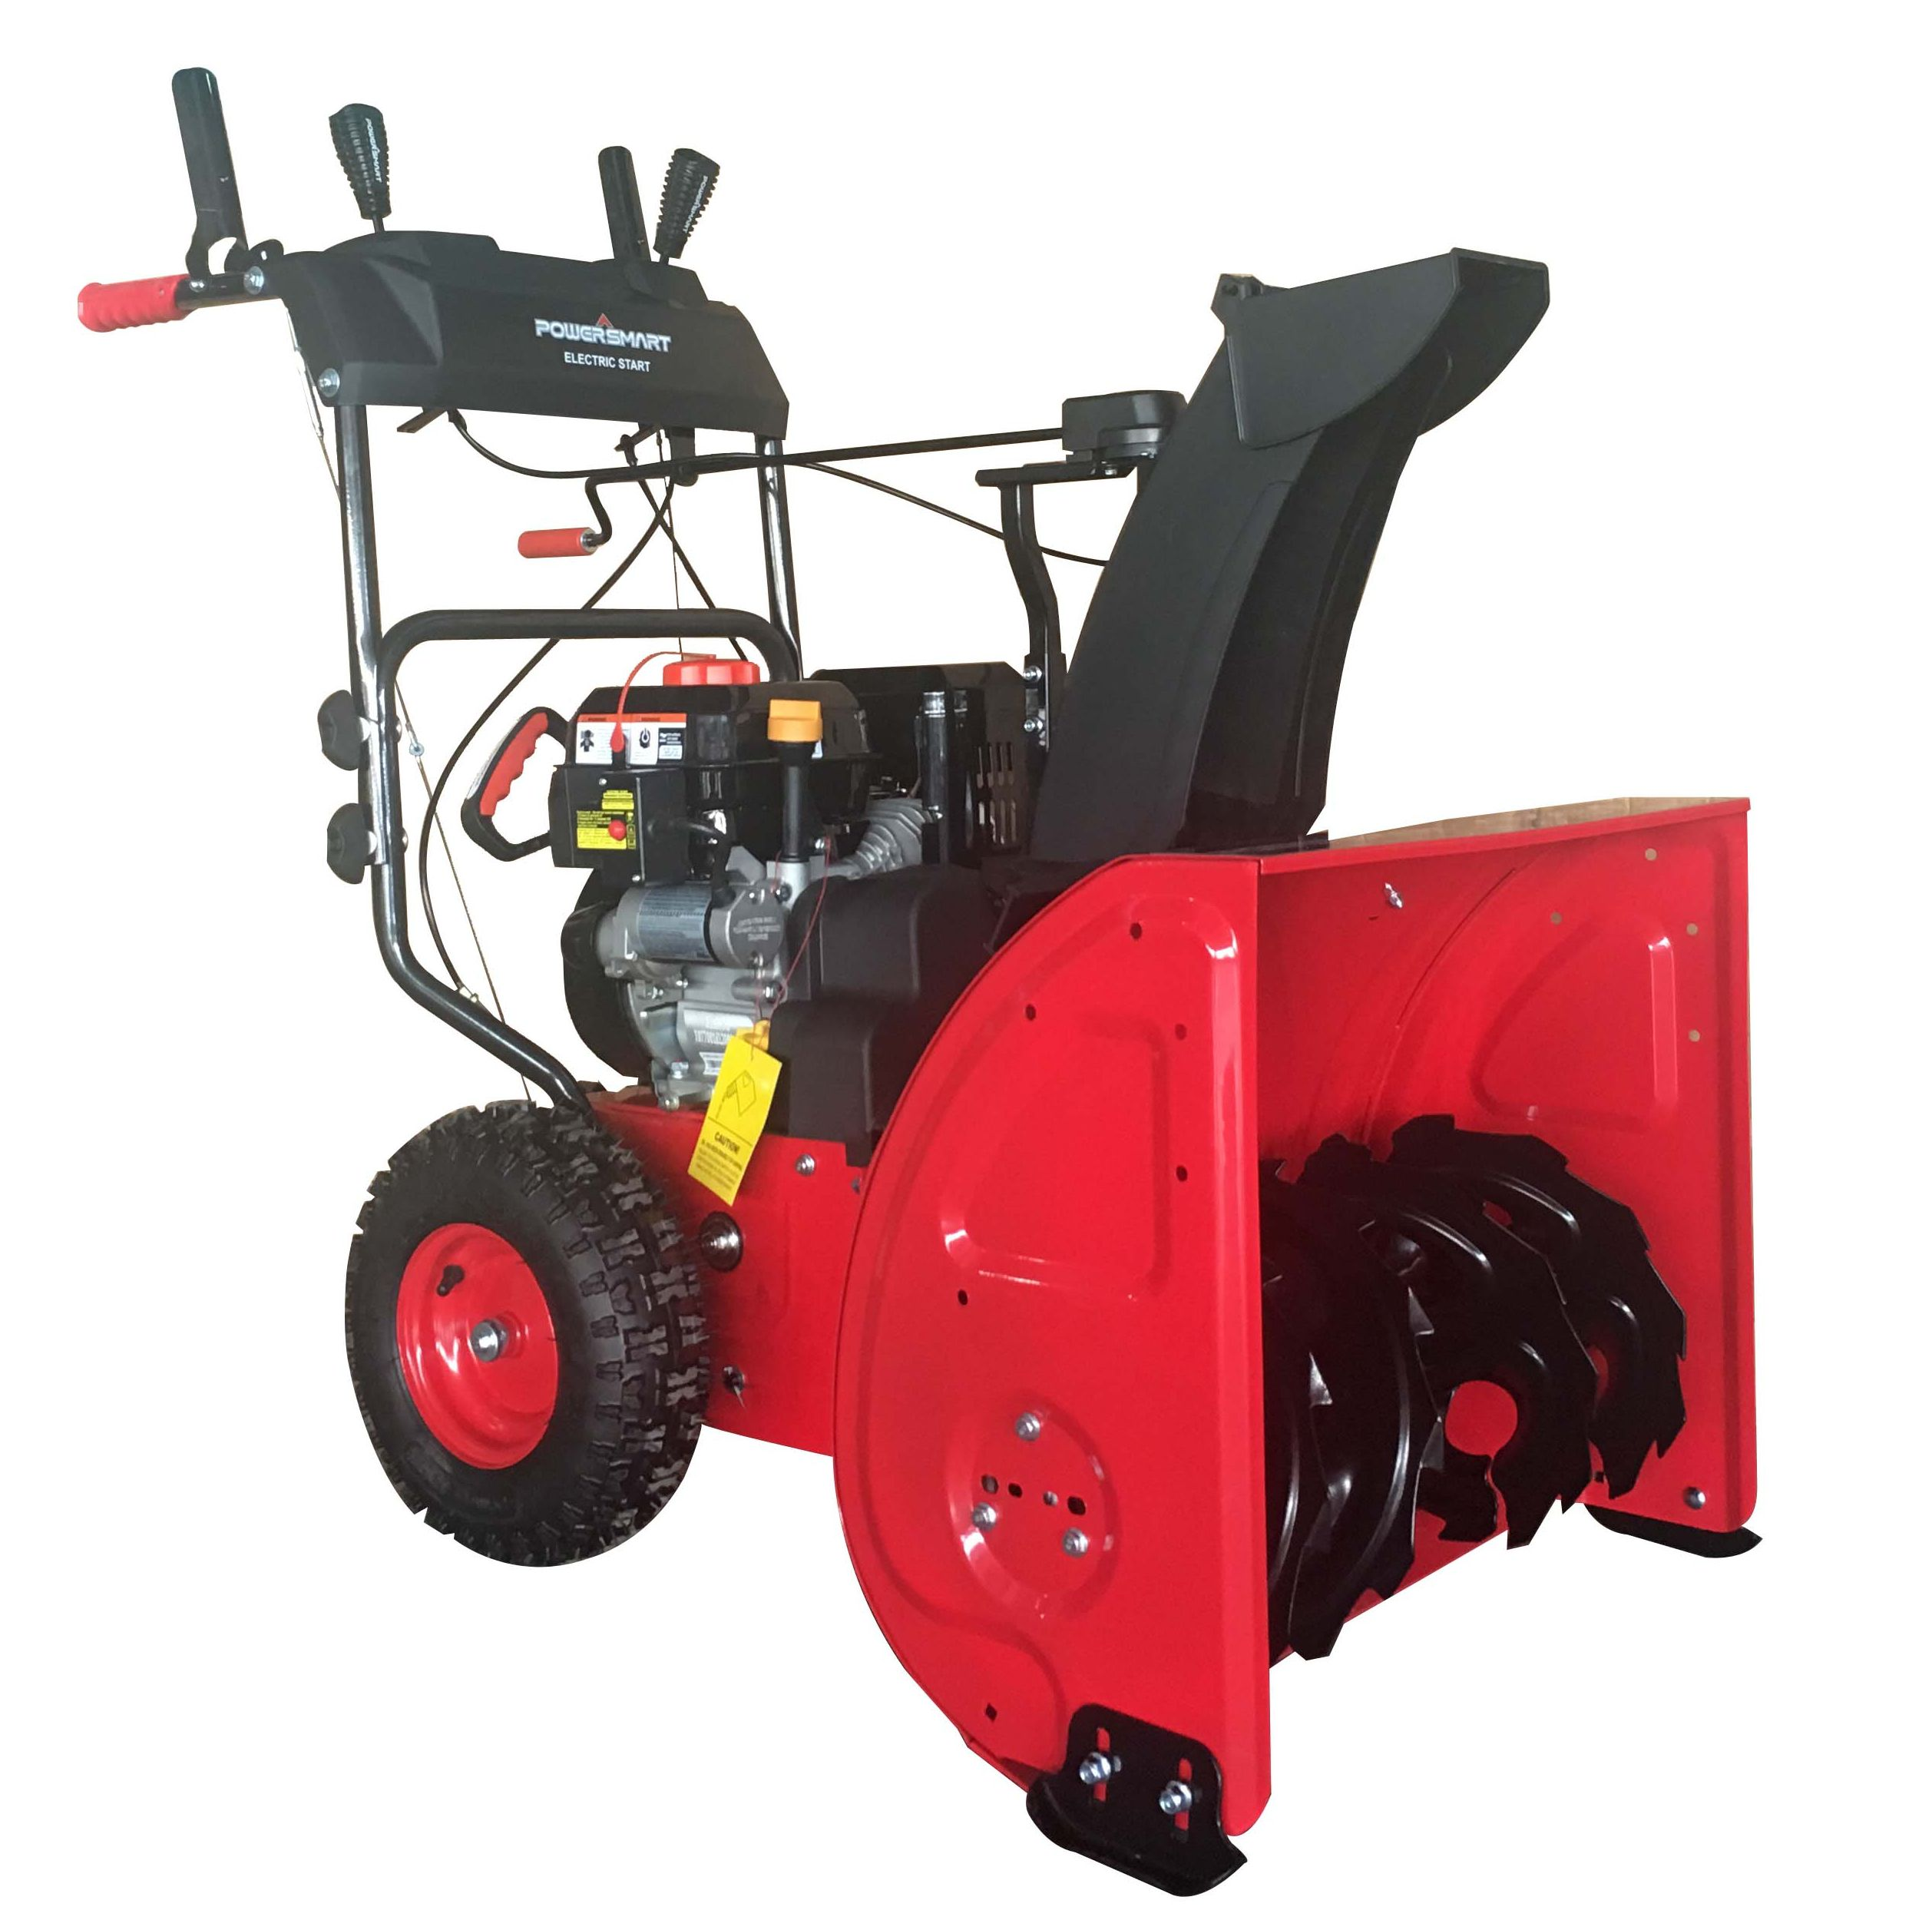 Recomeneded Powersmart Db72024pa 24 Inch 2 Stage Gas Snow Blower With Power Assist Home And Yard Gas Snow Blower Snow Removal Equipment Snow